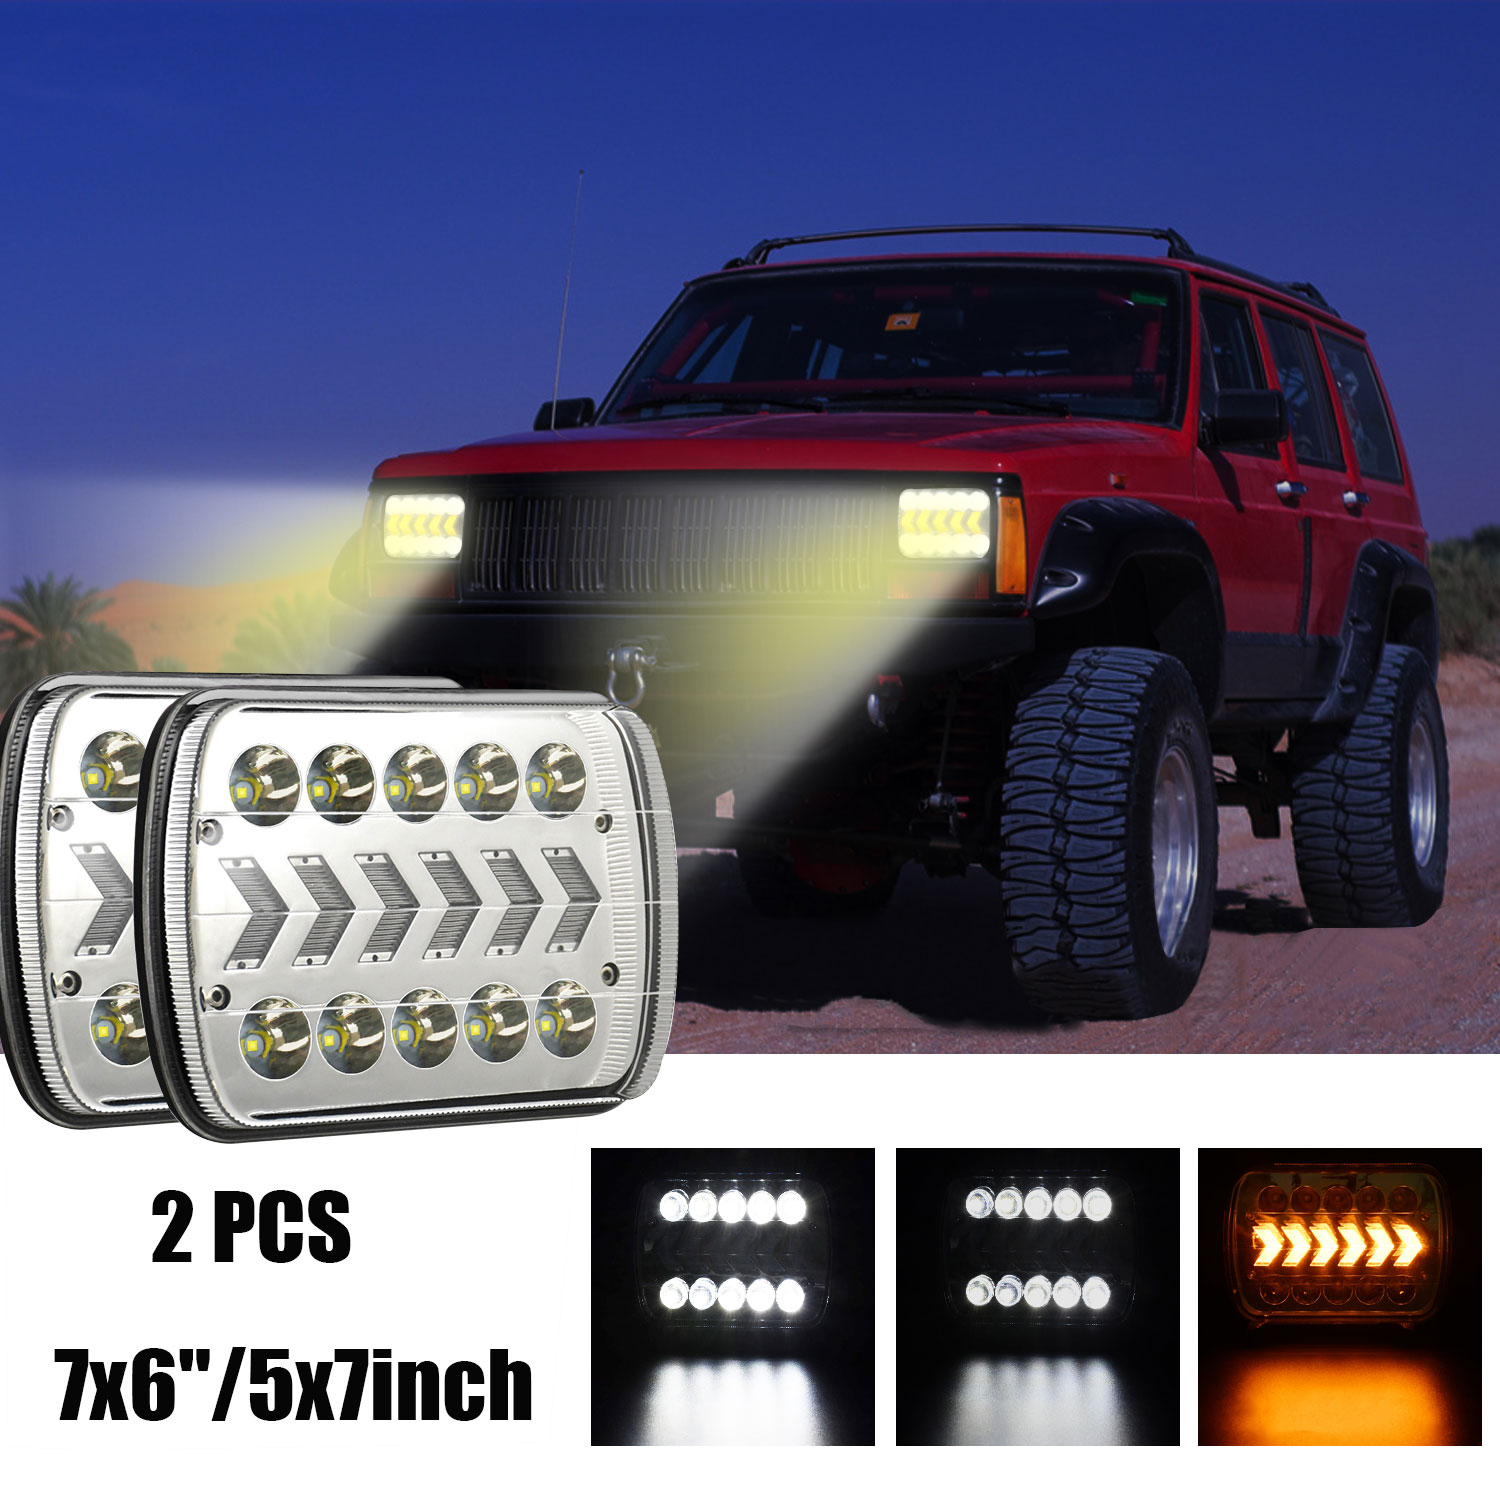 1 Pair Aluminum 7-inch 7x6 5x7 Truck Square Lights With Dynamic Sequential Turn Signal With H4 to 3 pin line